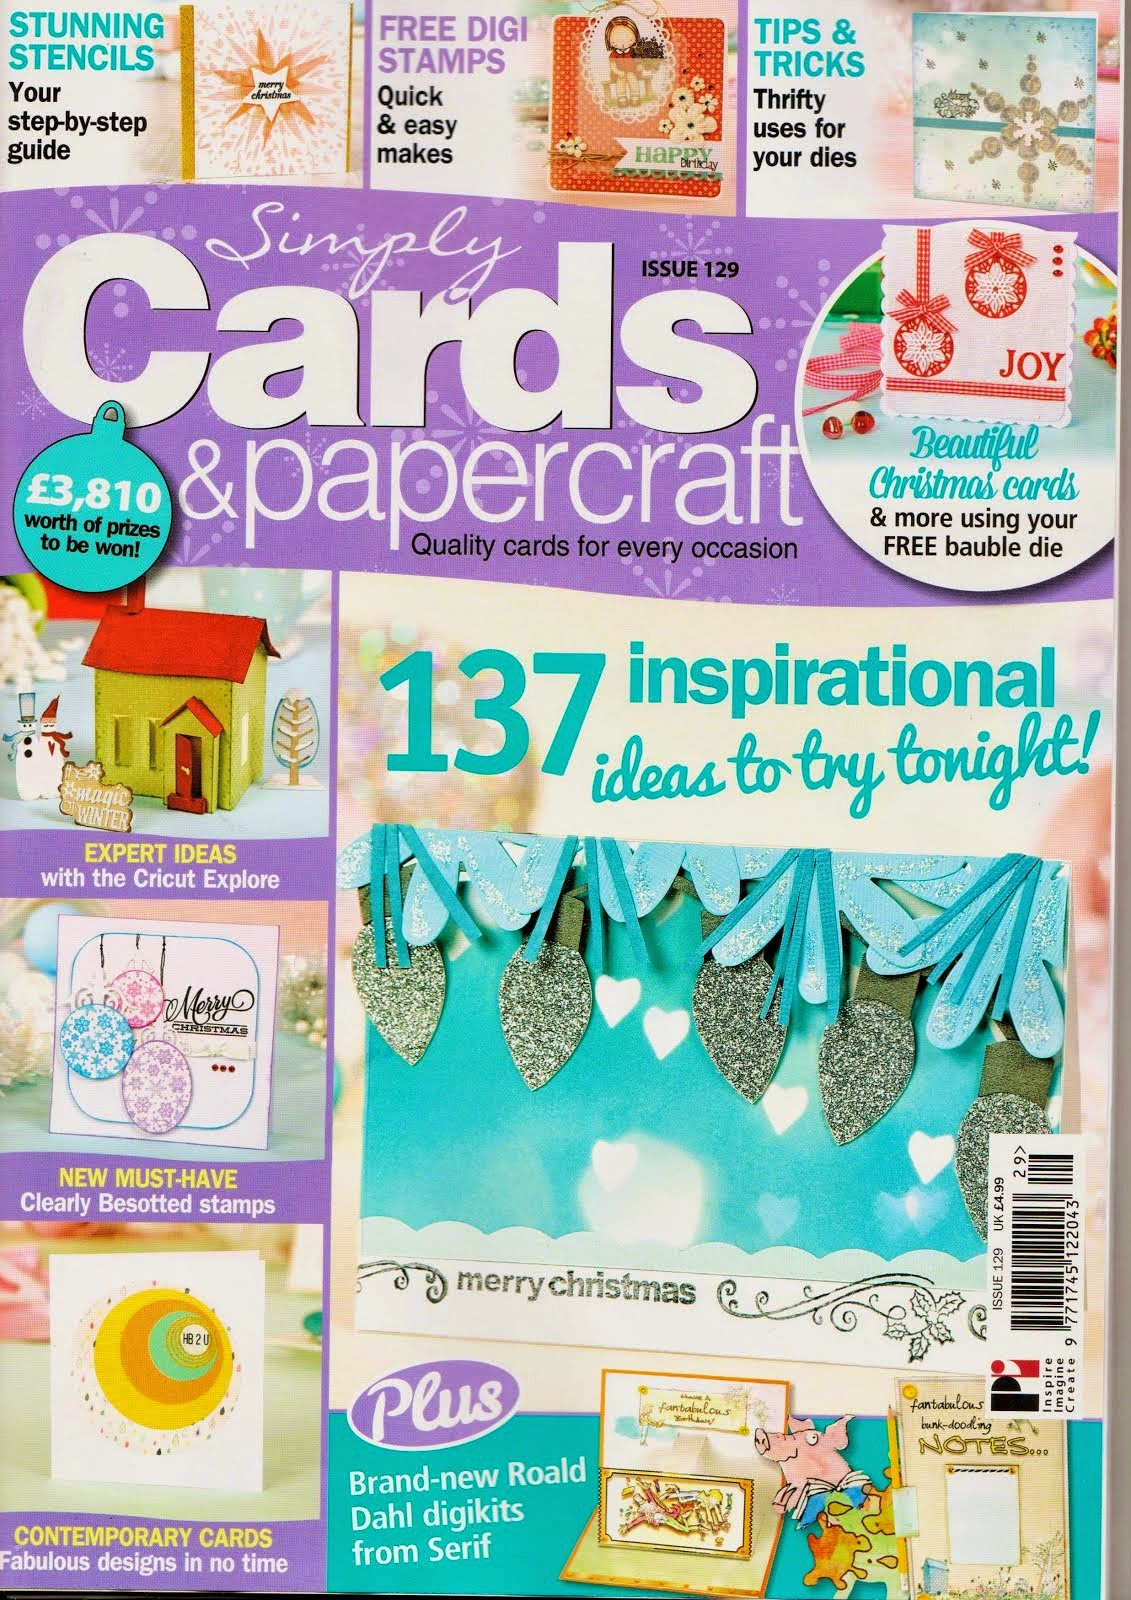 Recently Published in Issue #129 Simply Cards and Papercraft